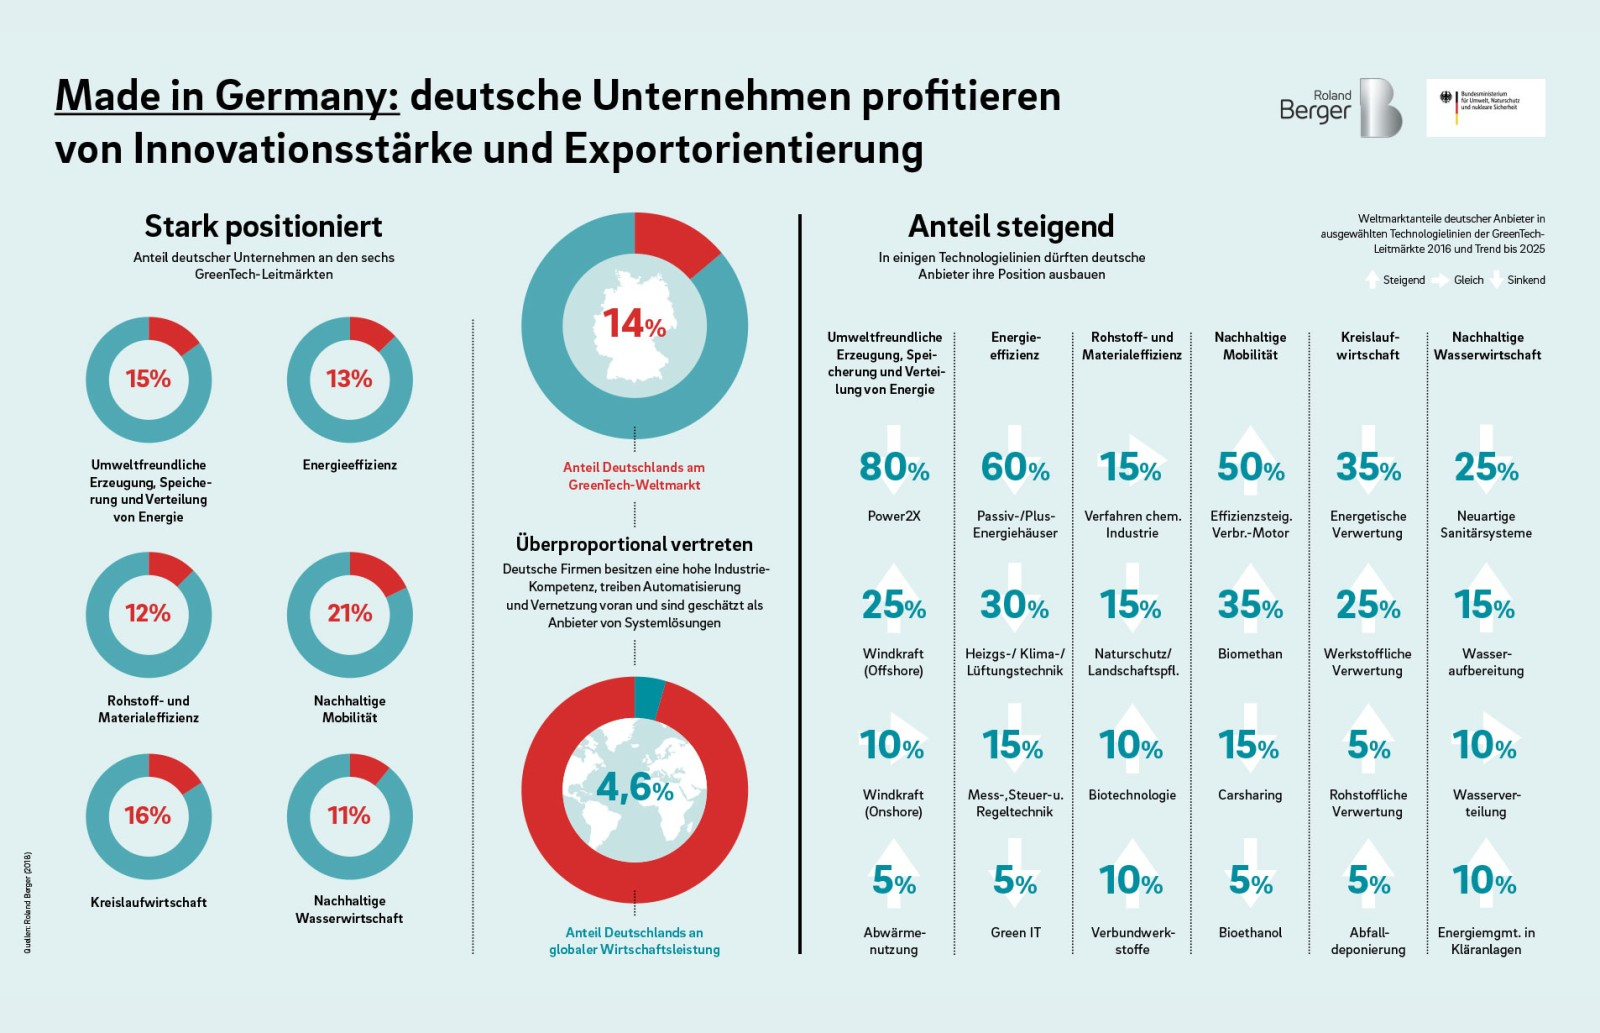 GreenTech made in Germany 2018 — Roland Berger